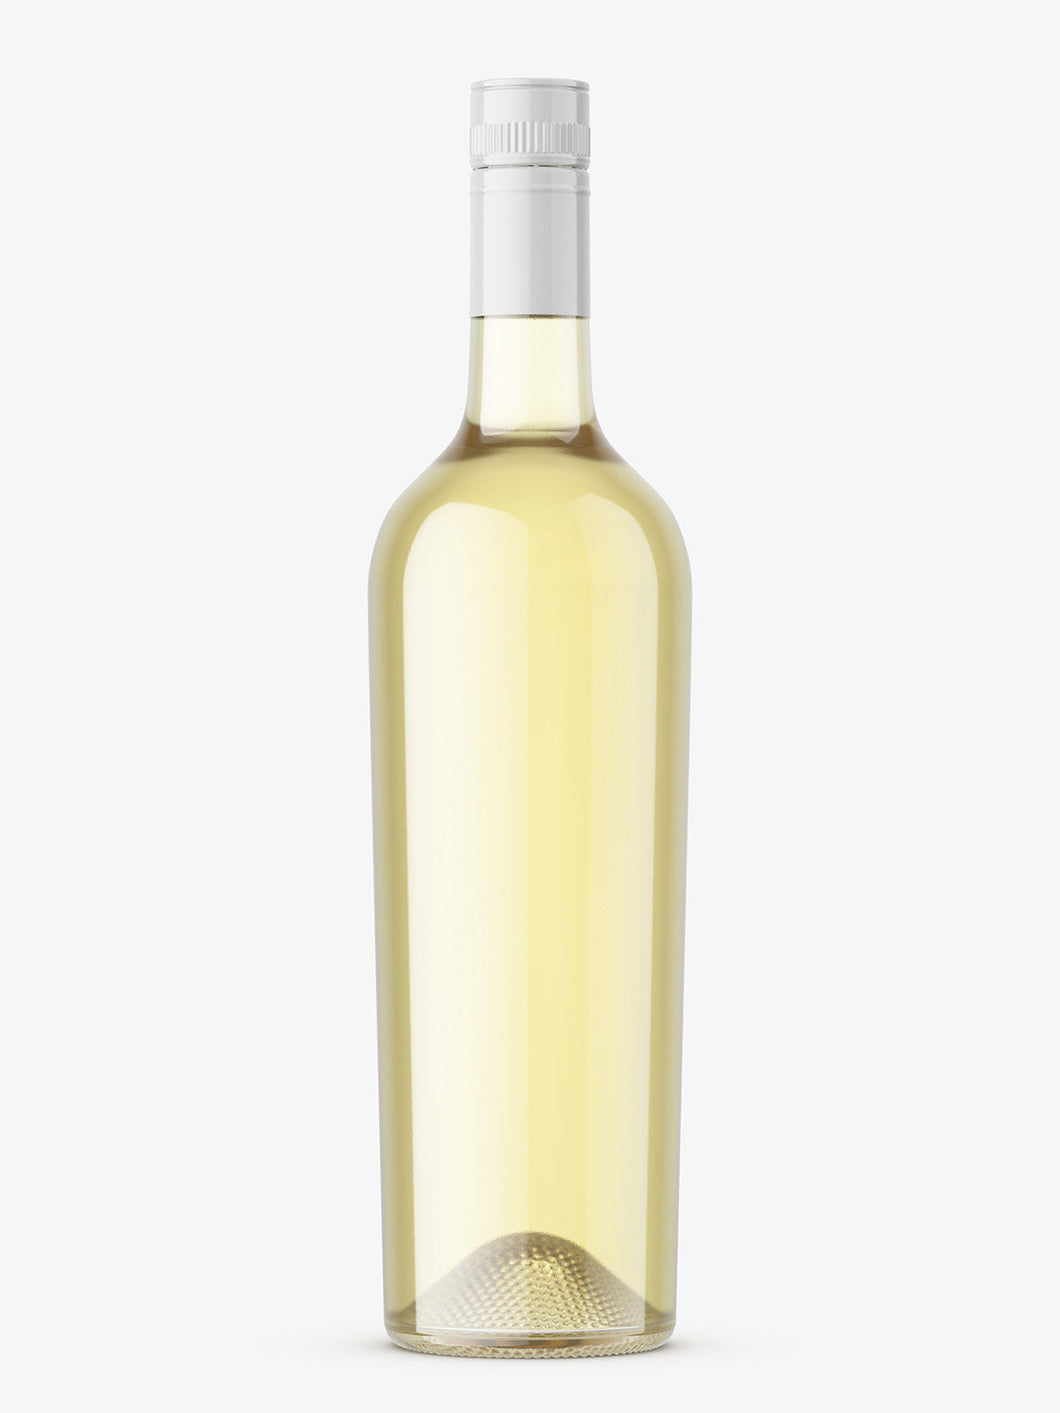 Greg Cooley Wines Reserve Chardonnay, Adelaide Hills, South Australia